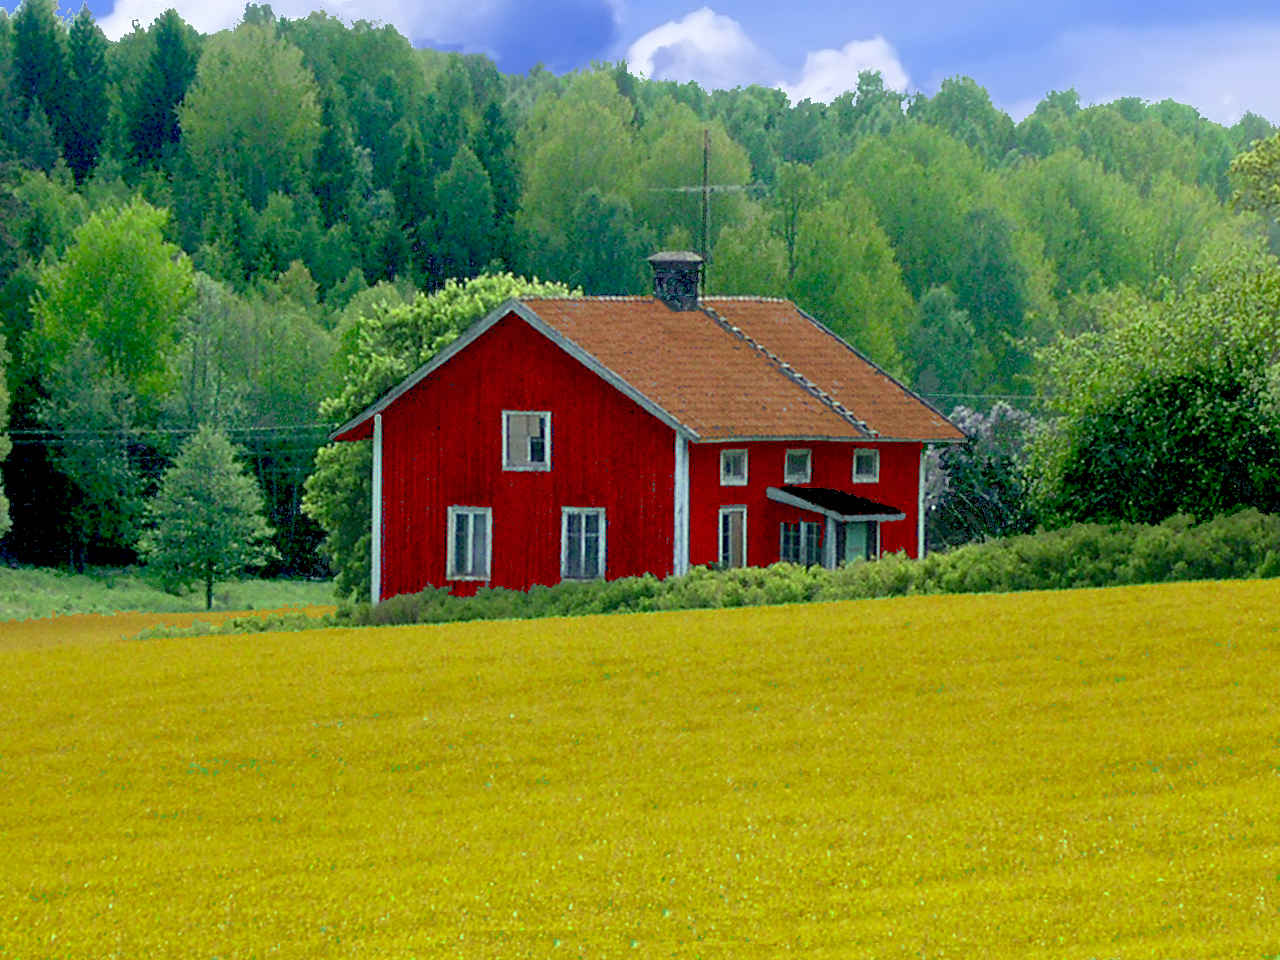 Abandoned wooden house in swedish landscape flickr for House landscape